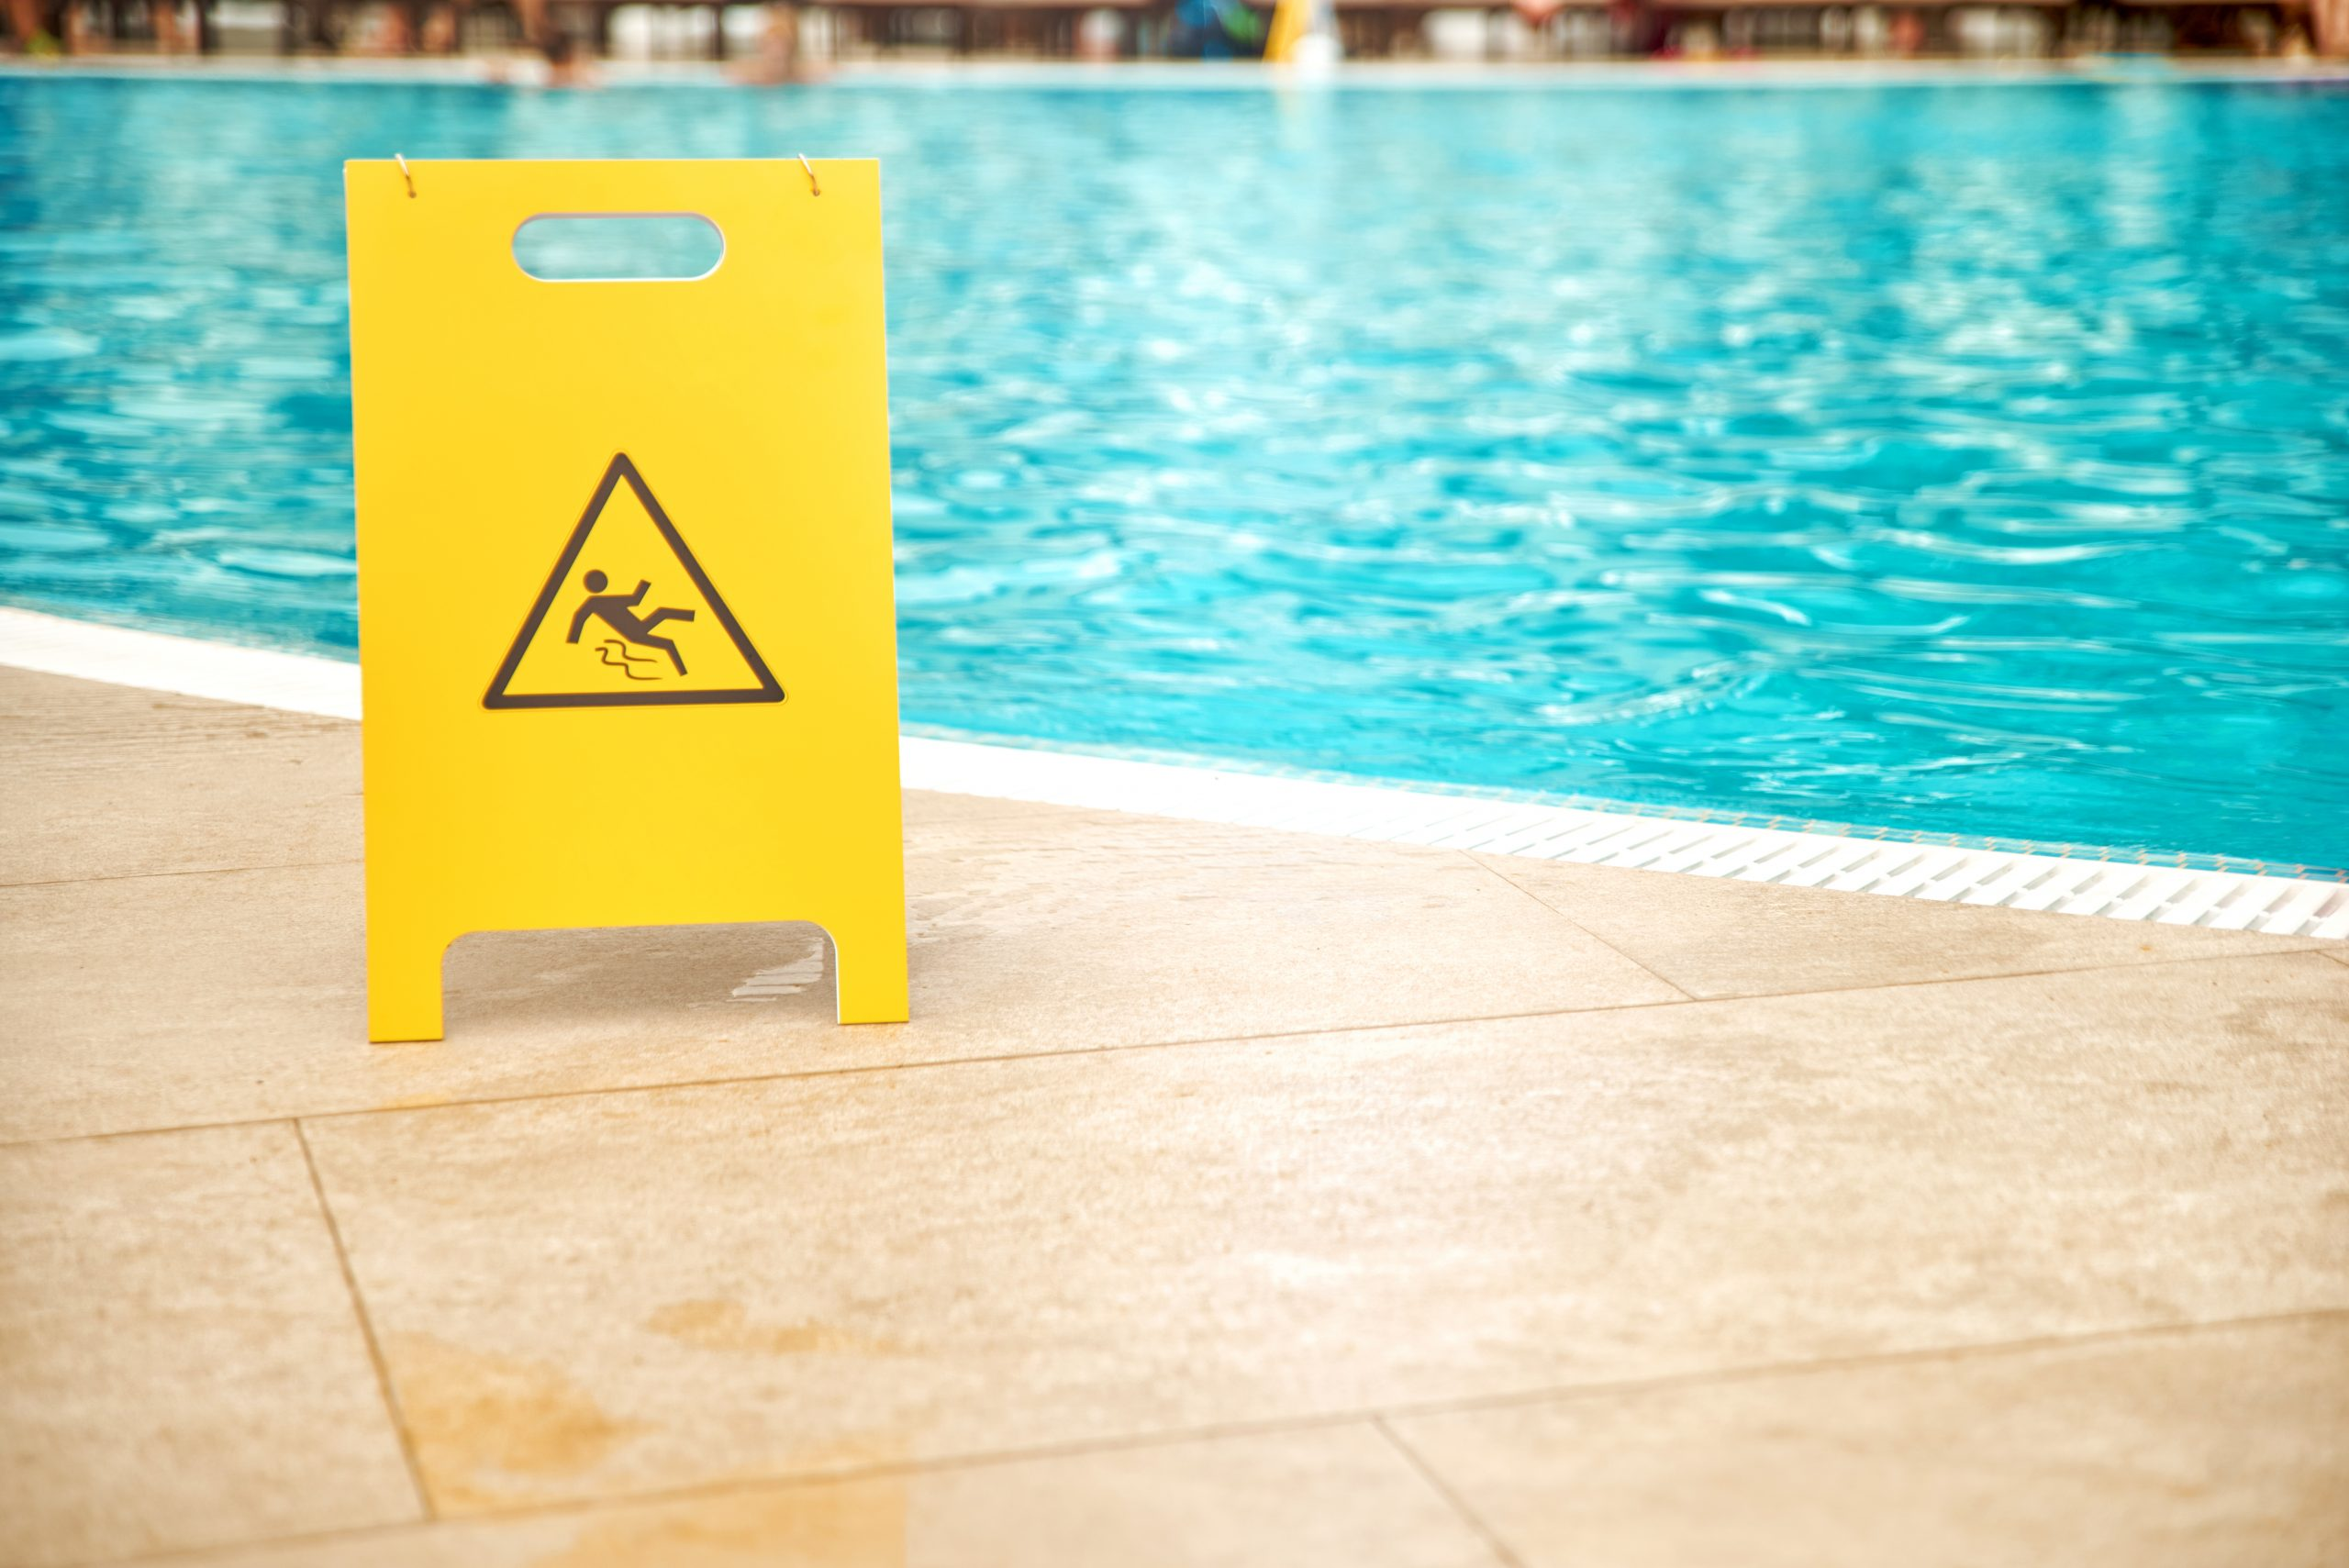 What Can I Use to Clean My Swimming Pool?